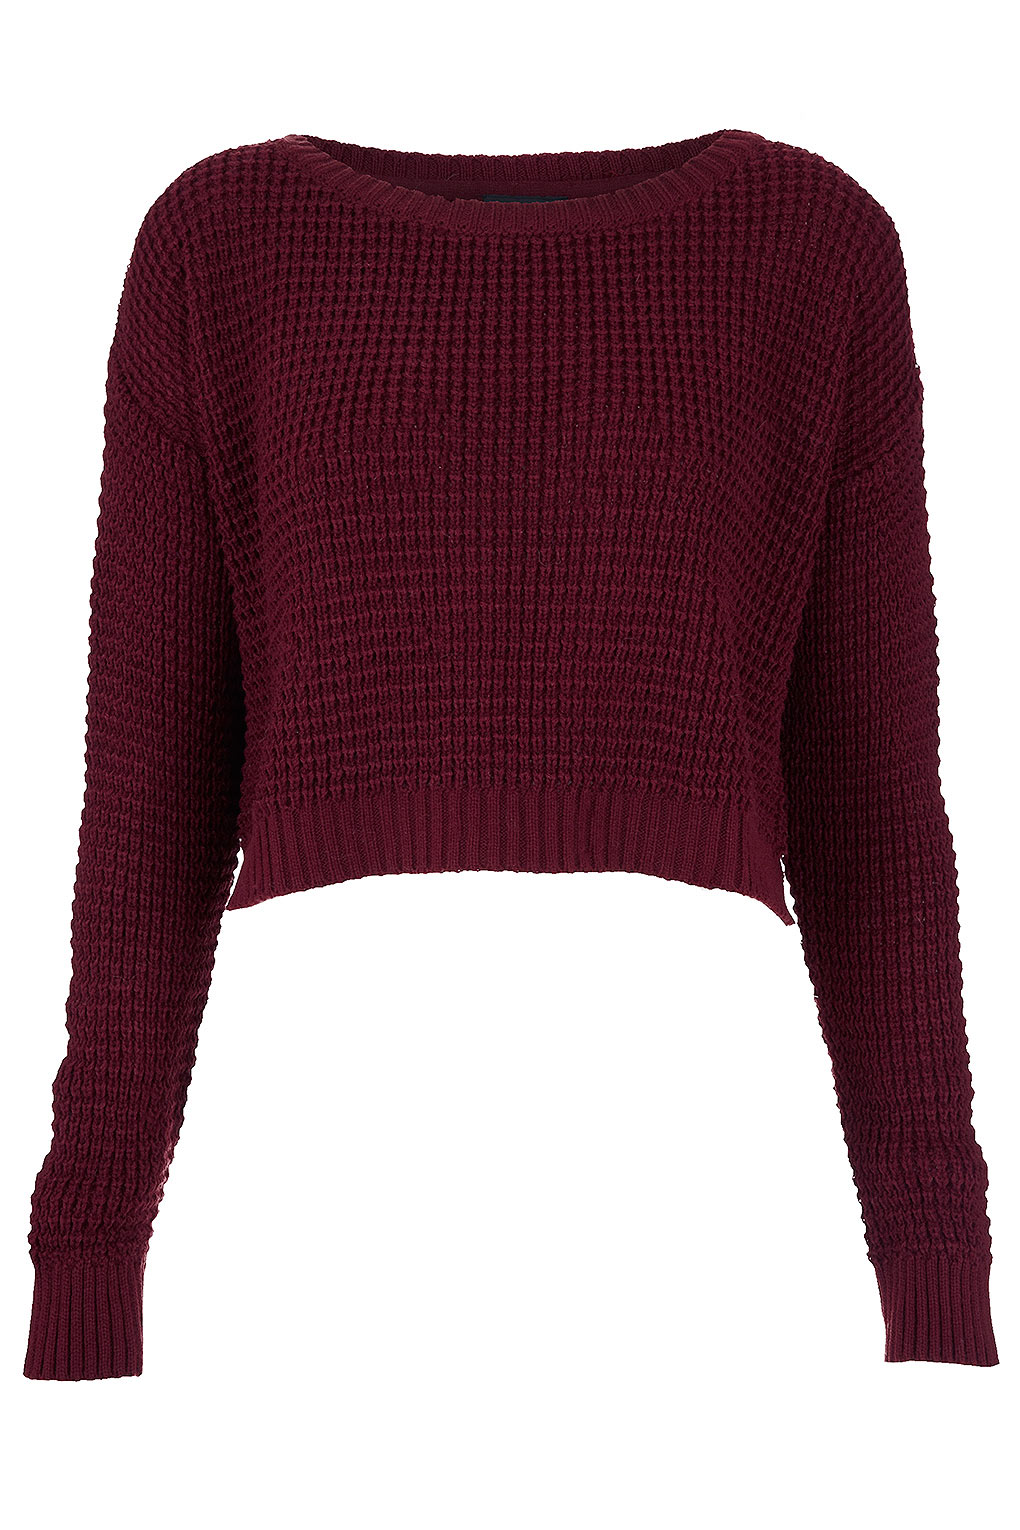 Set of 3 Cropped Jumper tops for everyday and athlete wear Found in TSR Category 'Sims 4 Female Everyday' We use cookies on this site to give you the best experience possible. By continuing to use this site you accept our cookie policy.